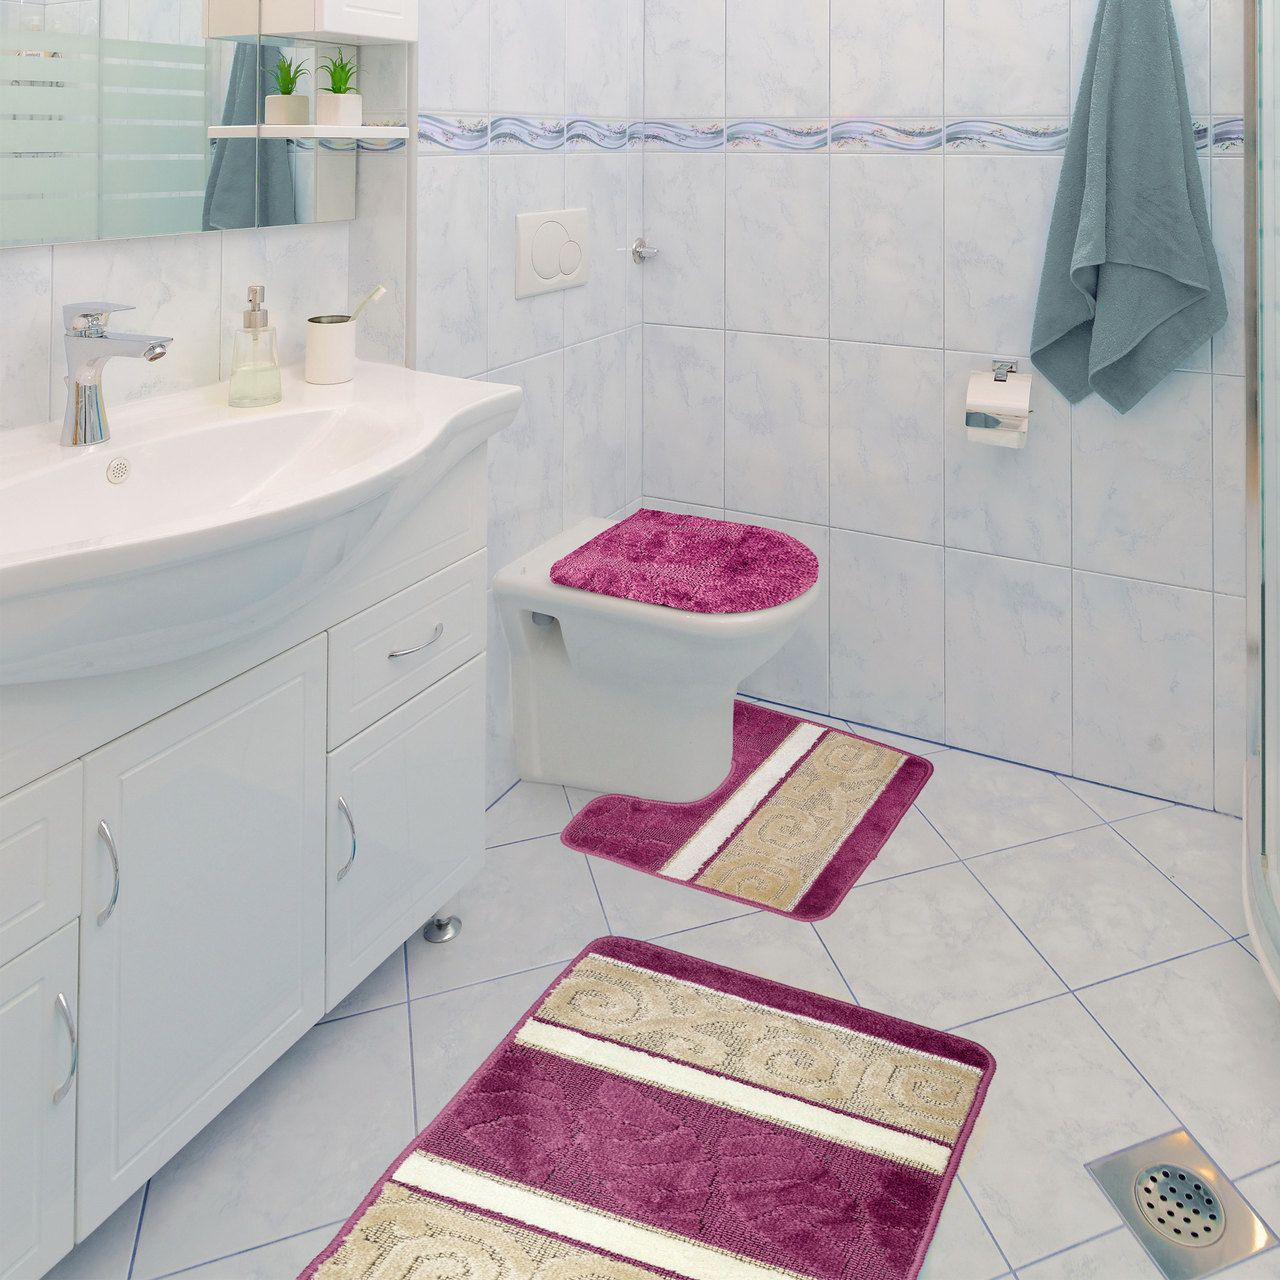 Scroll 3 Piece Bathroom Rug Set Bath Rug Contour Rug Lid Cover